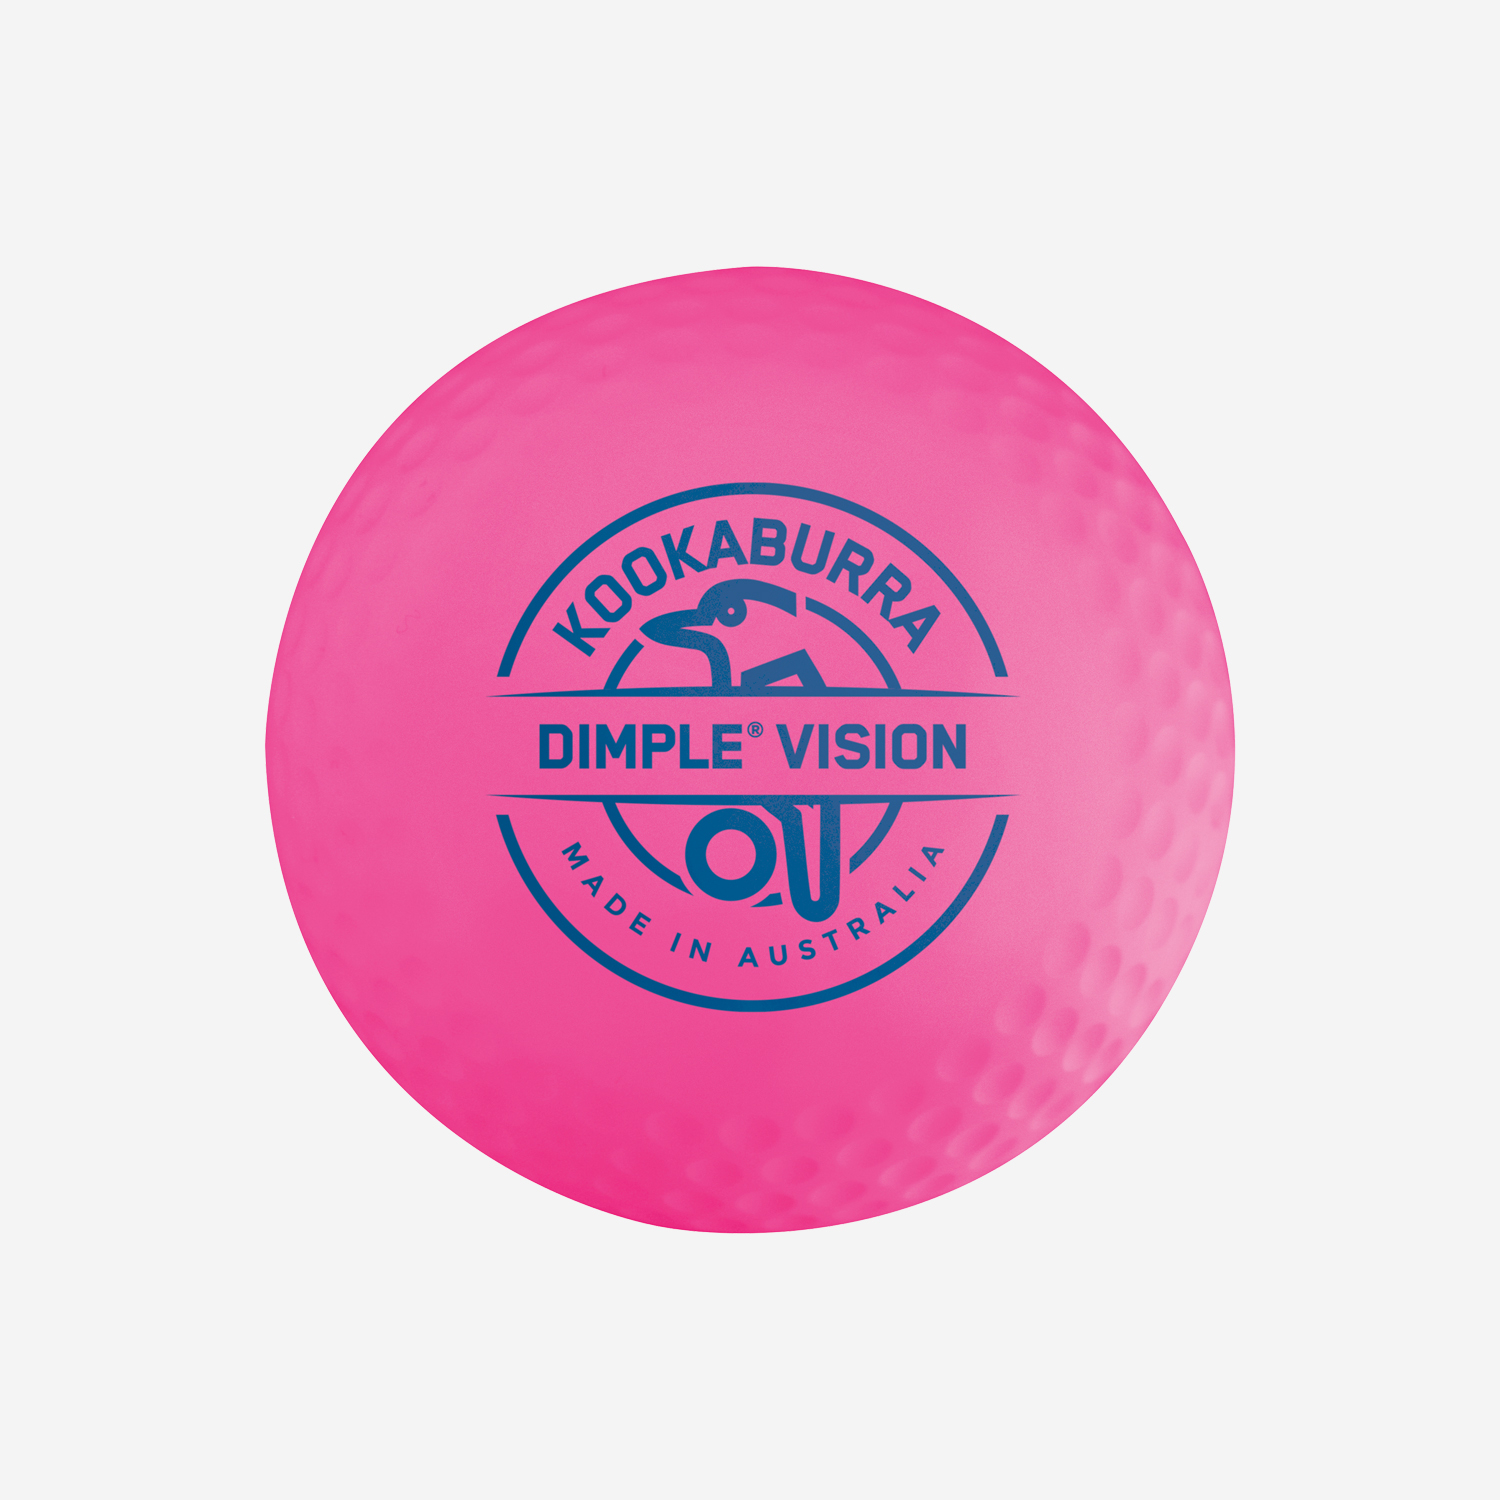 Dimple Vision Hockey Ball